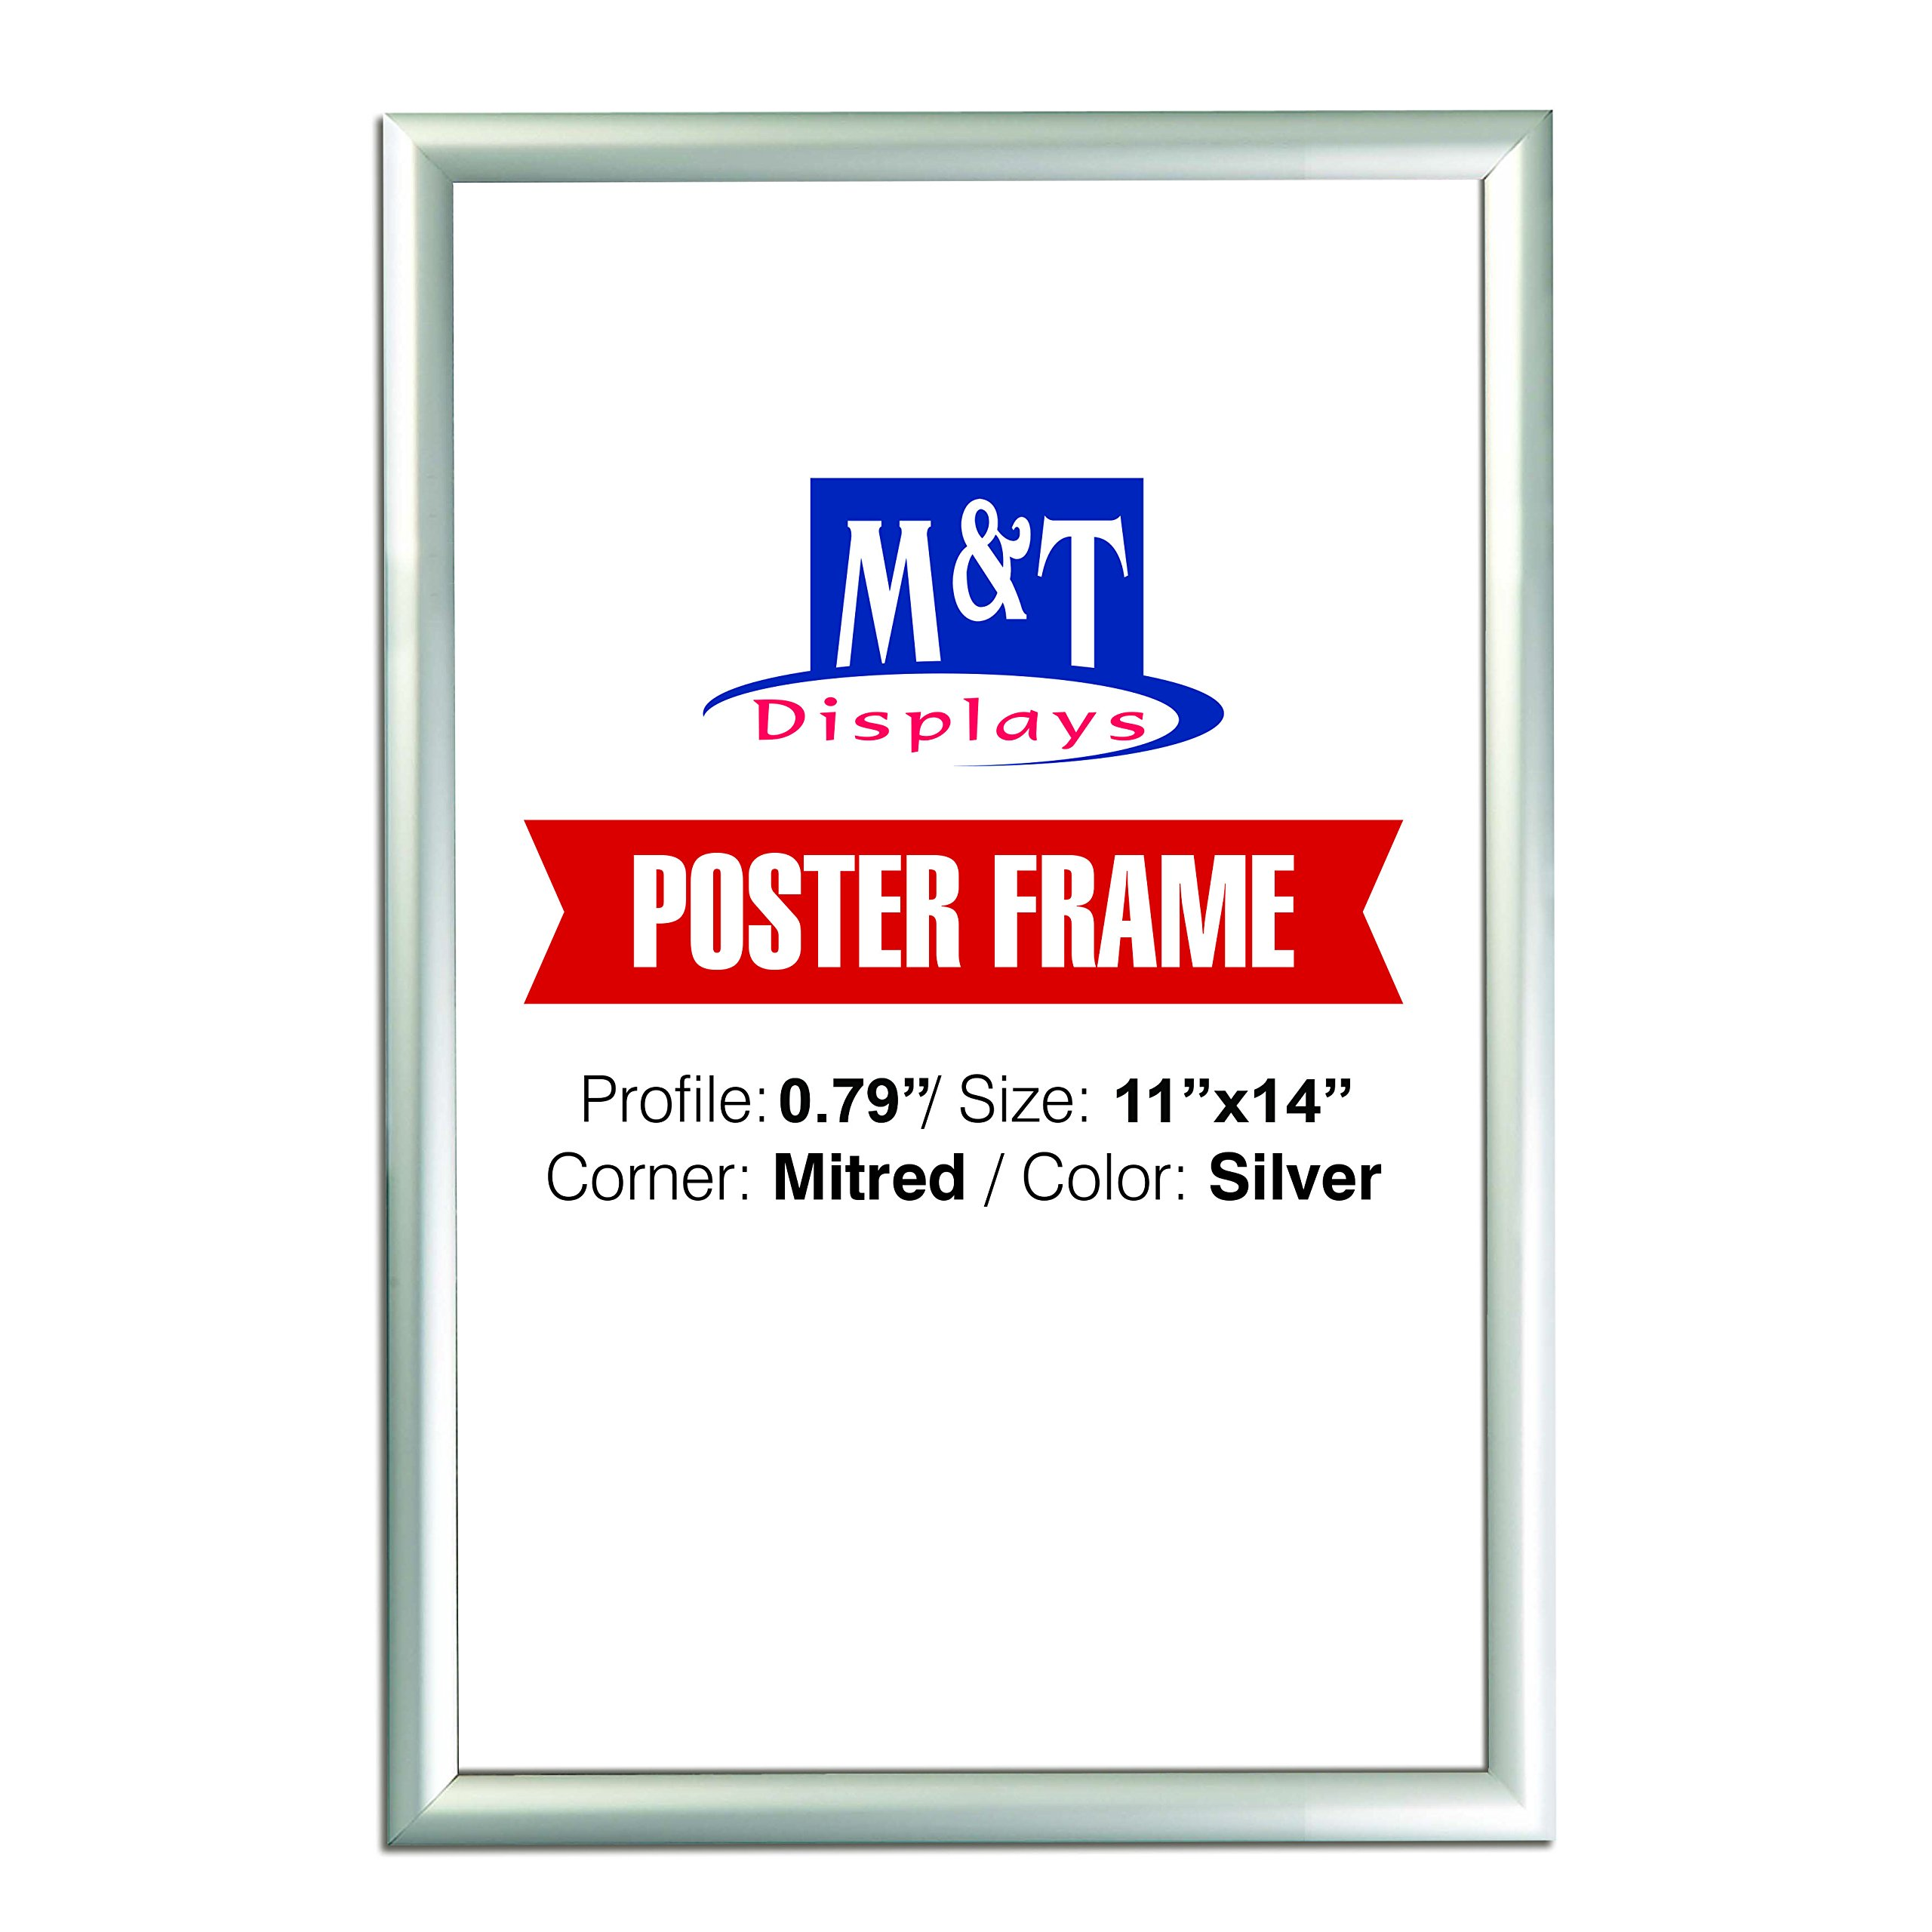 M&T Displays Snap Frame 11X14 inch, Poster Size 0.79 inch, Silver ...